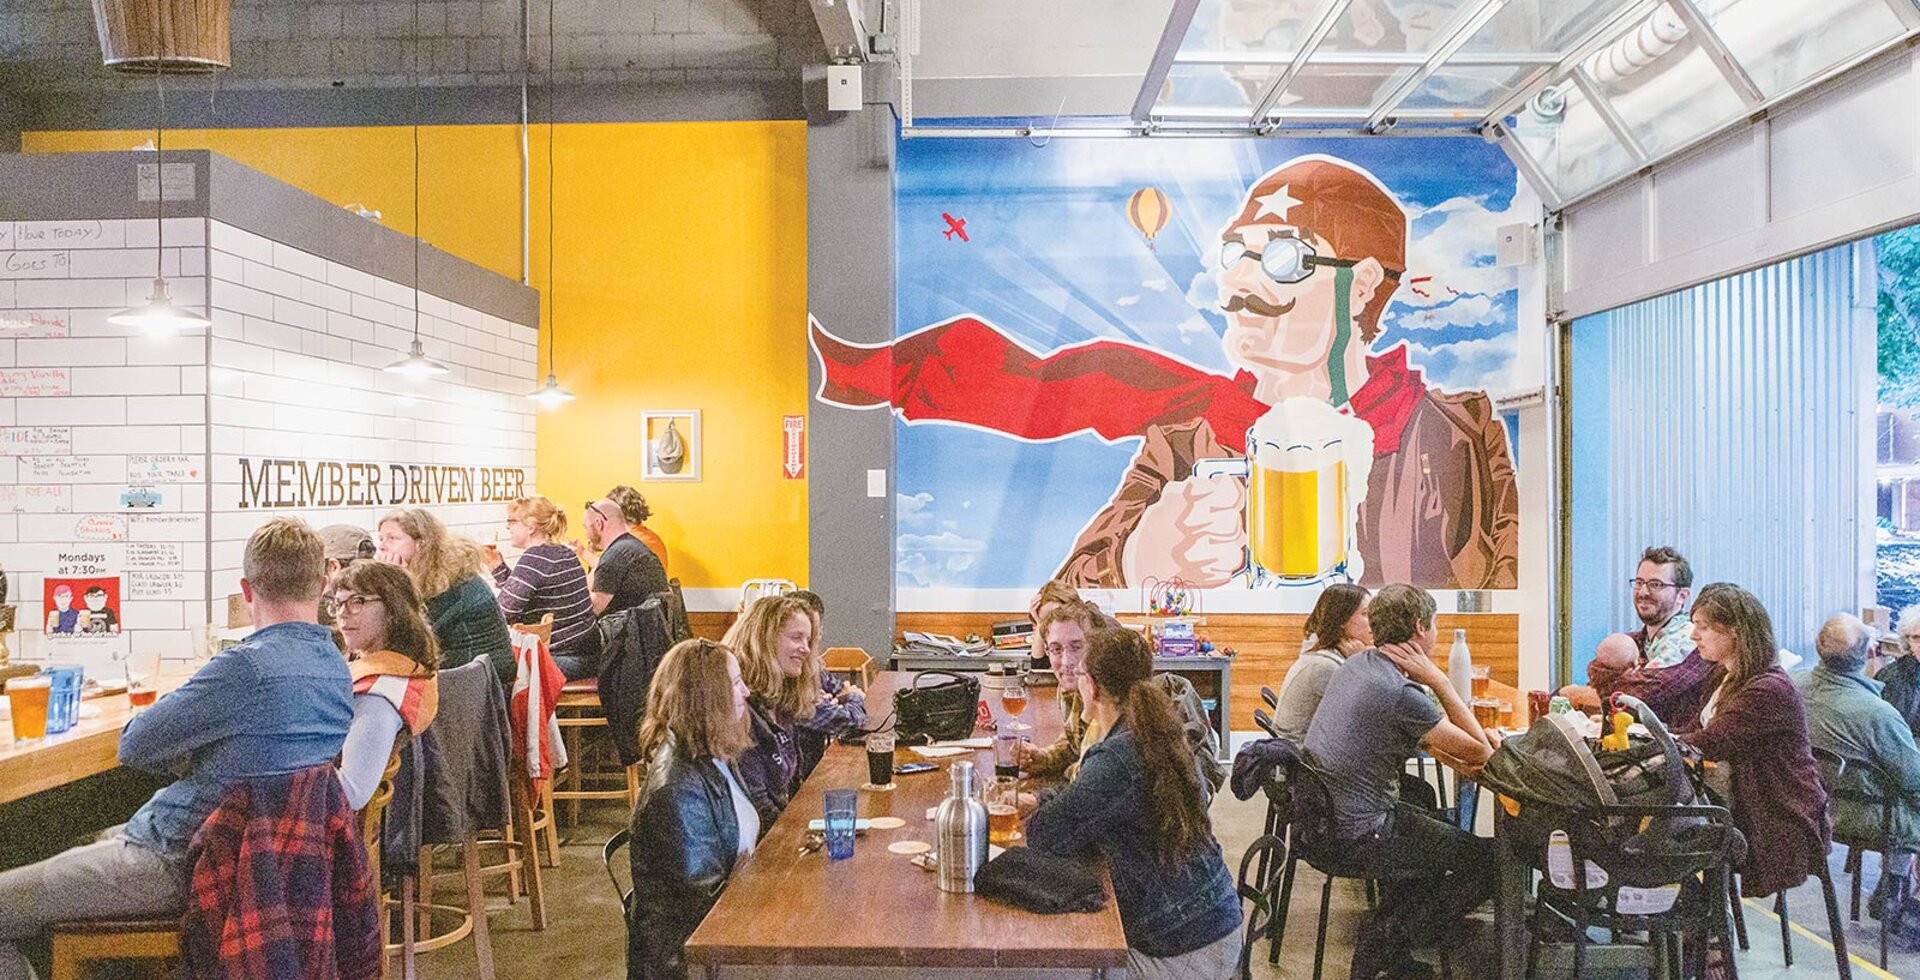 A business built by the community will be supported by the community—that's the idea behind Flying Bike. Being in the business of beer certainly helps, too.